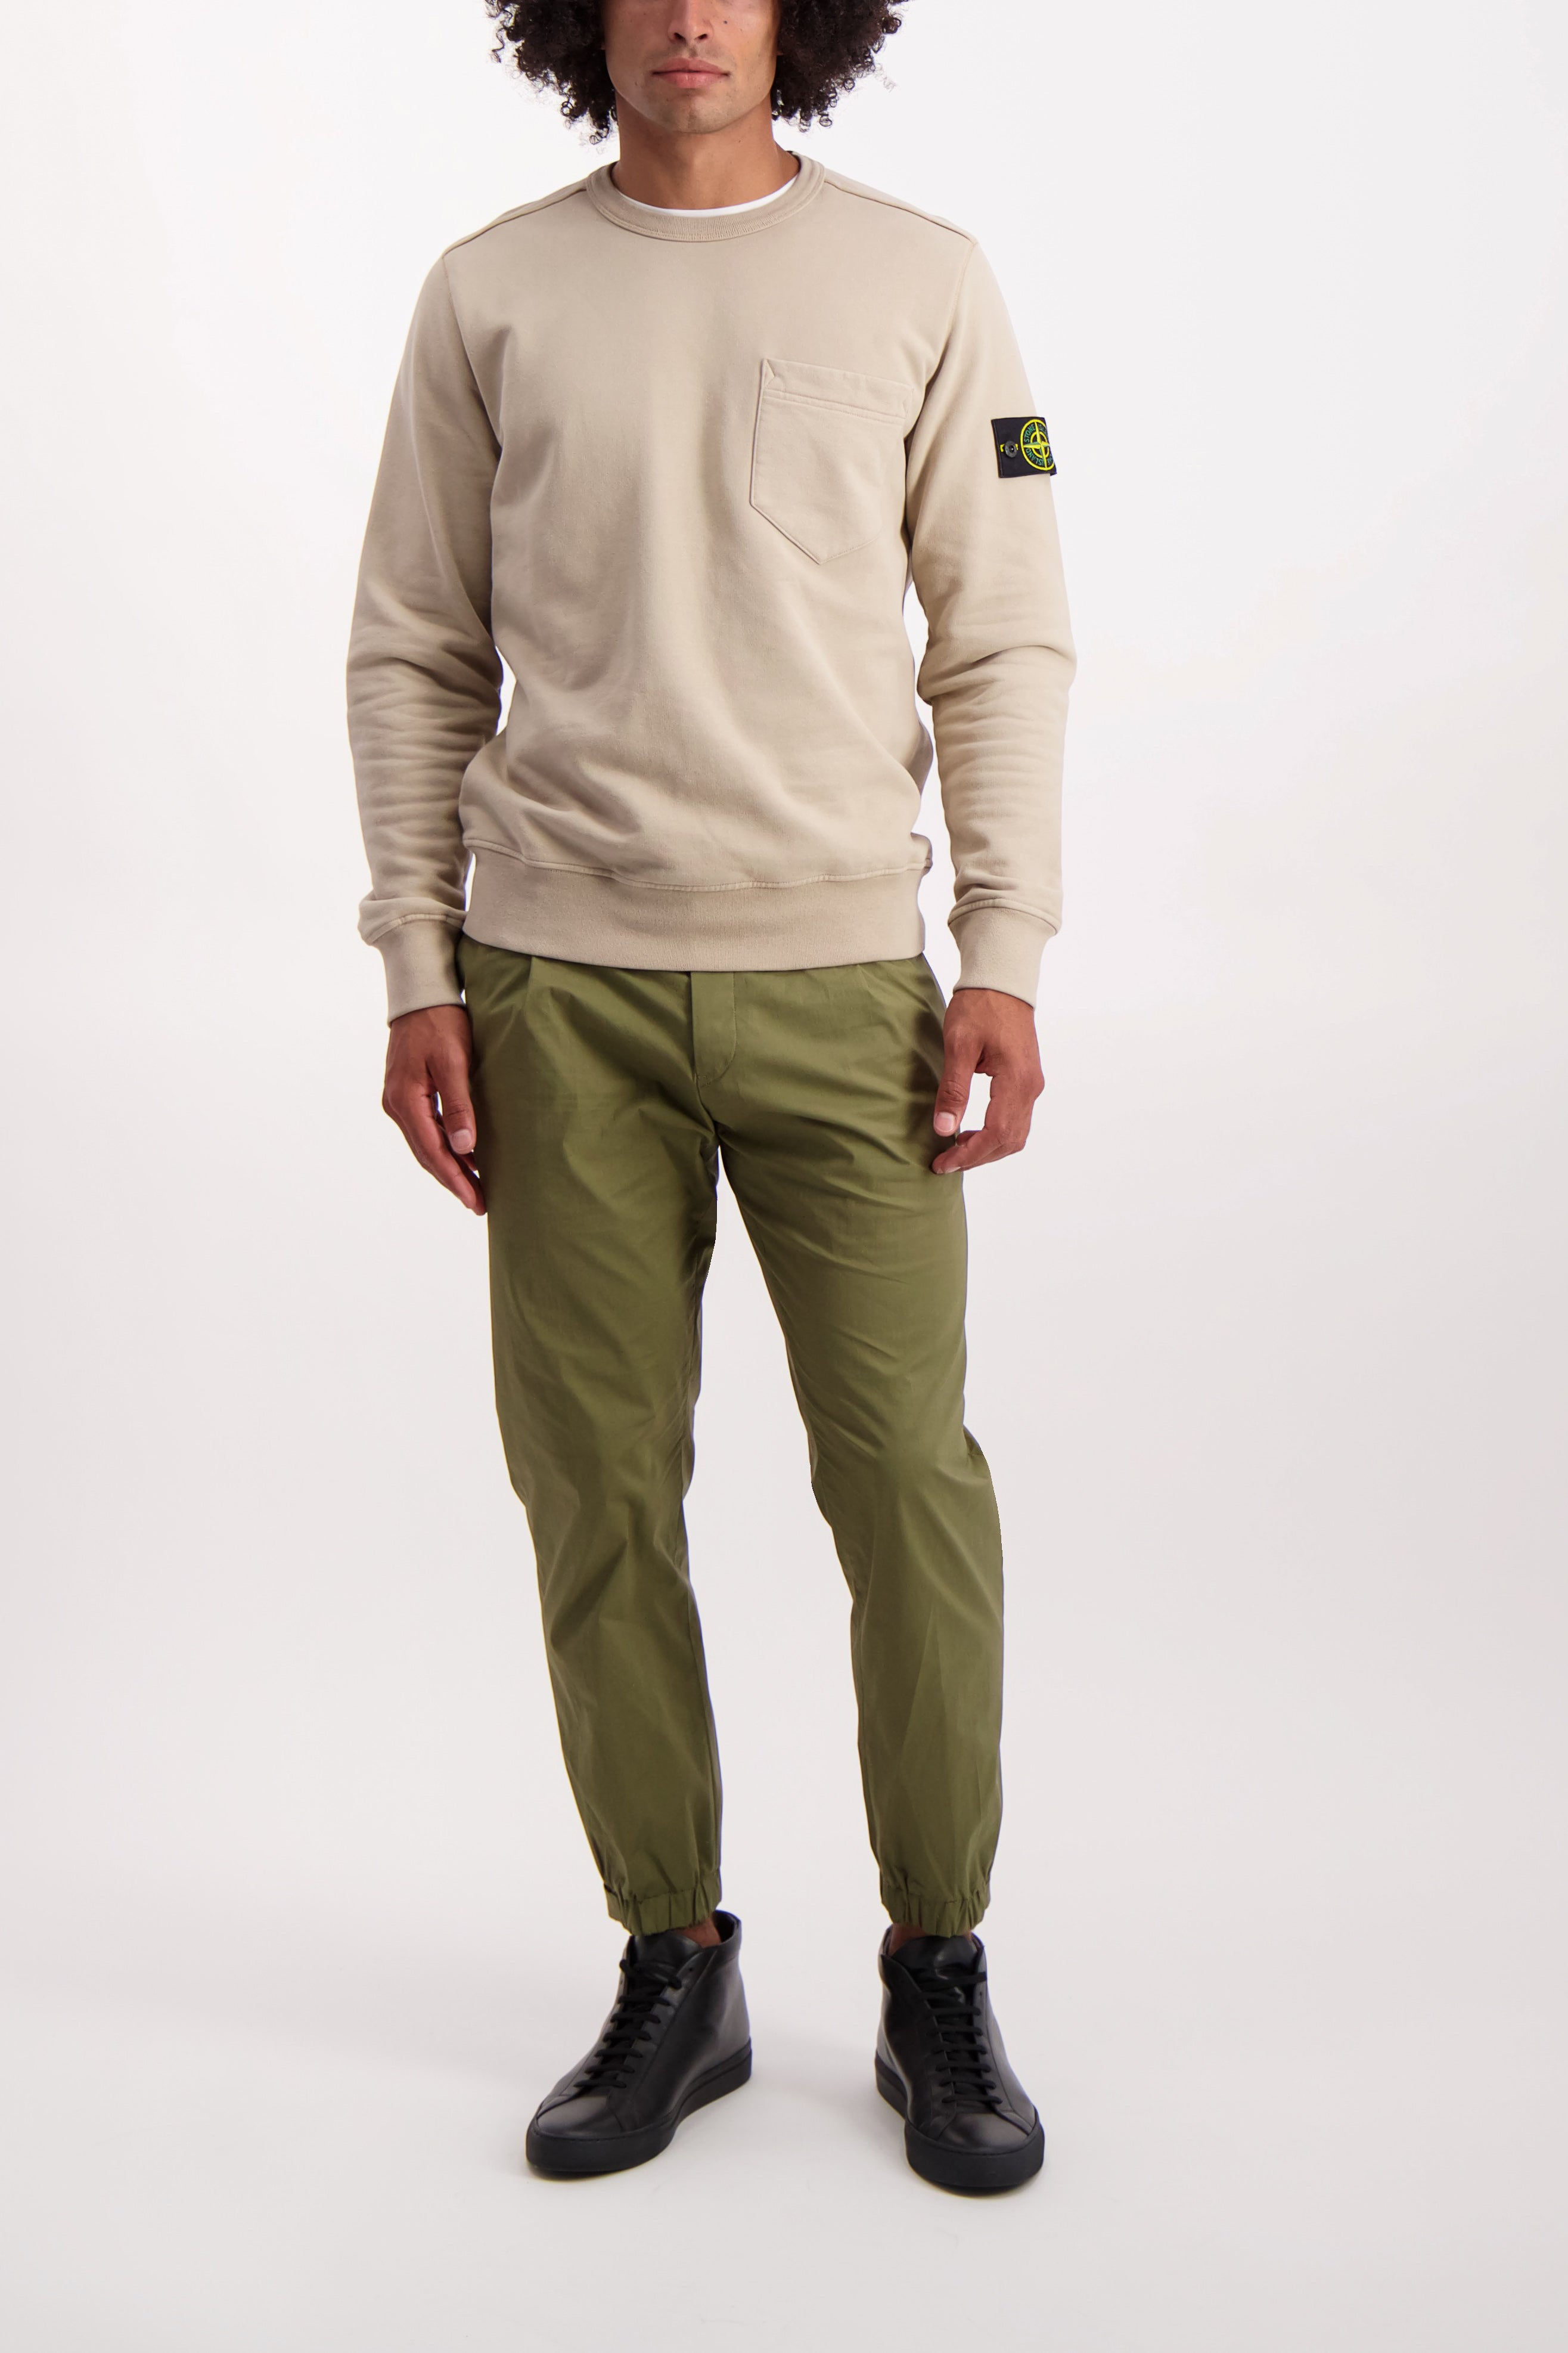 Full Body Image Of Model Wearing Stone Island Brushed Cotton Crewneck with Chest Pocket Sand